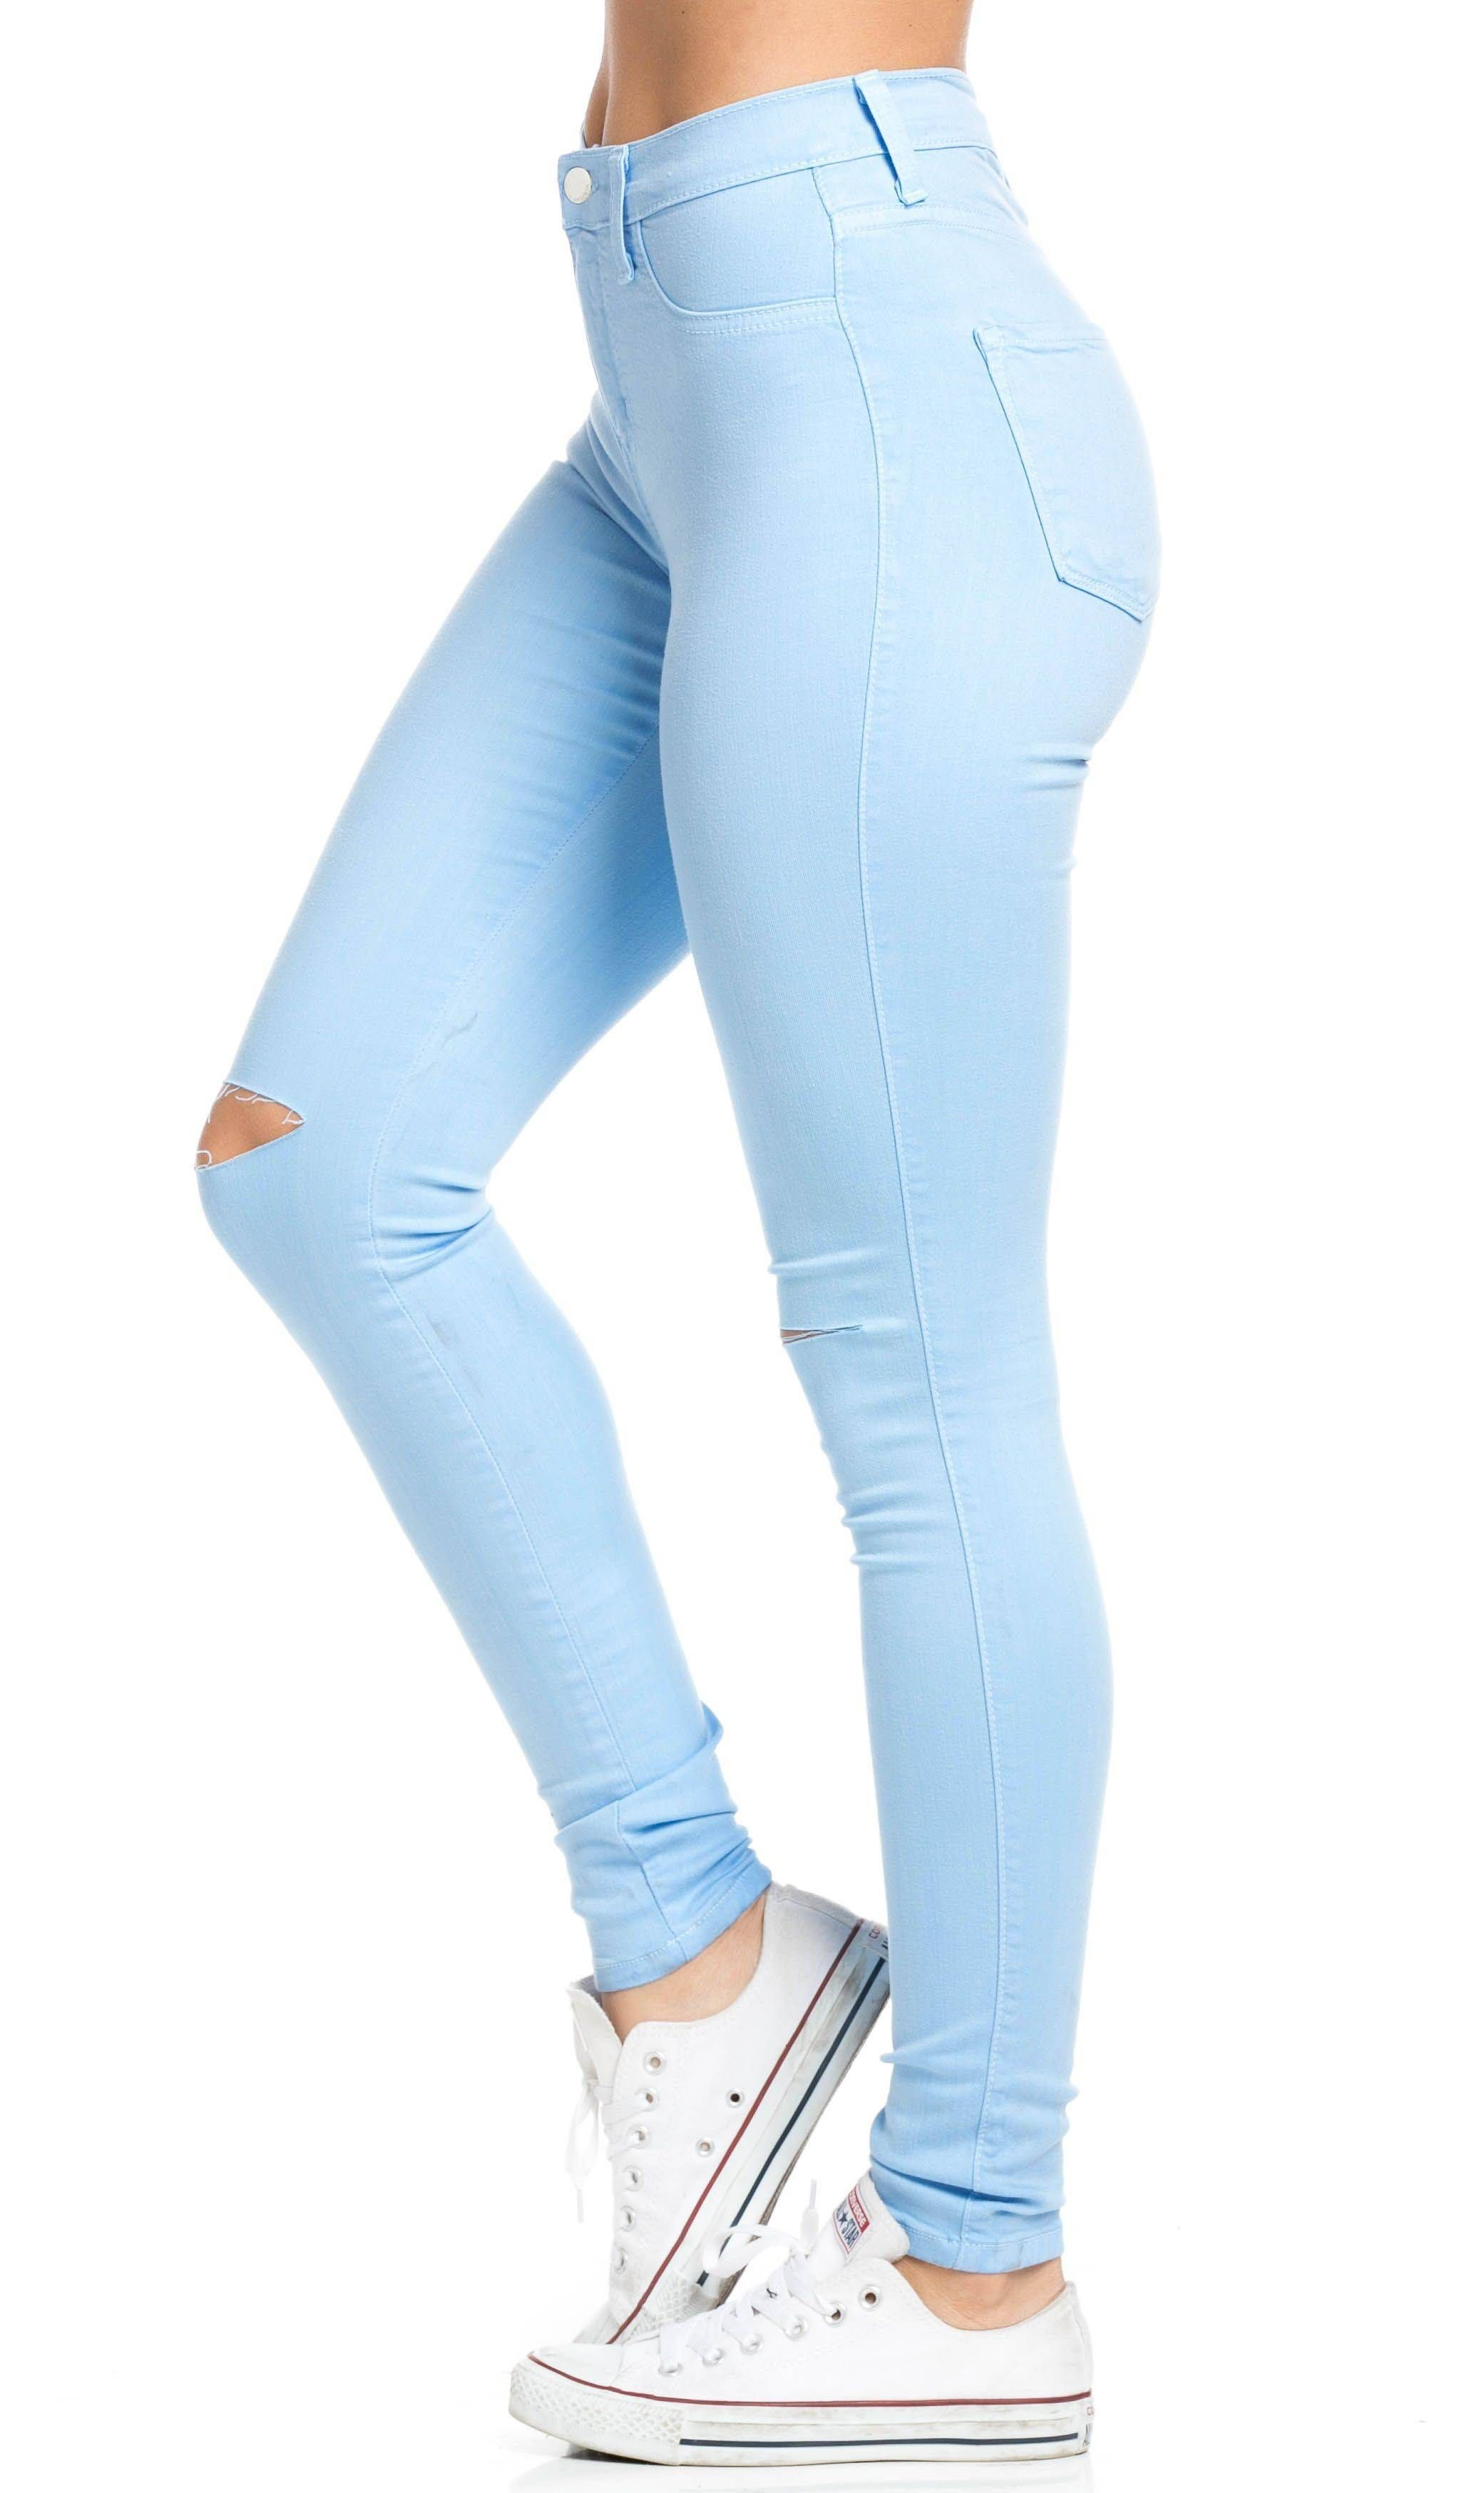 be3a3fe08 High Waisted Knee Slit Skinny Jeans in Baby Blue in 2019